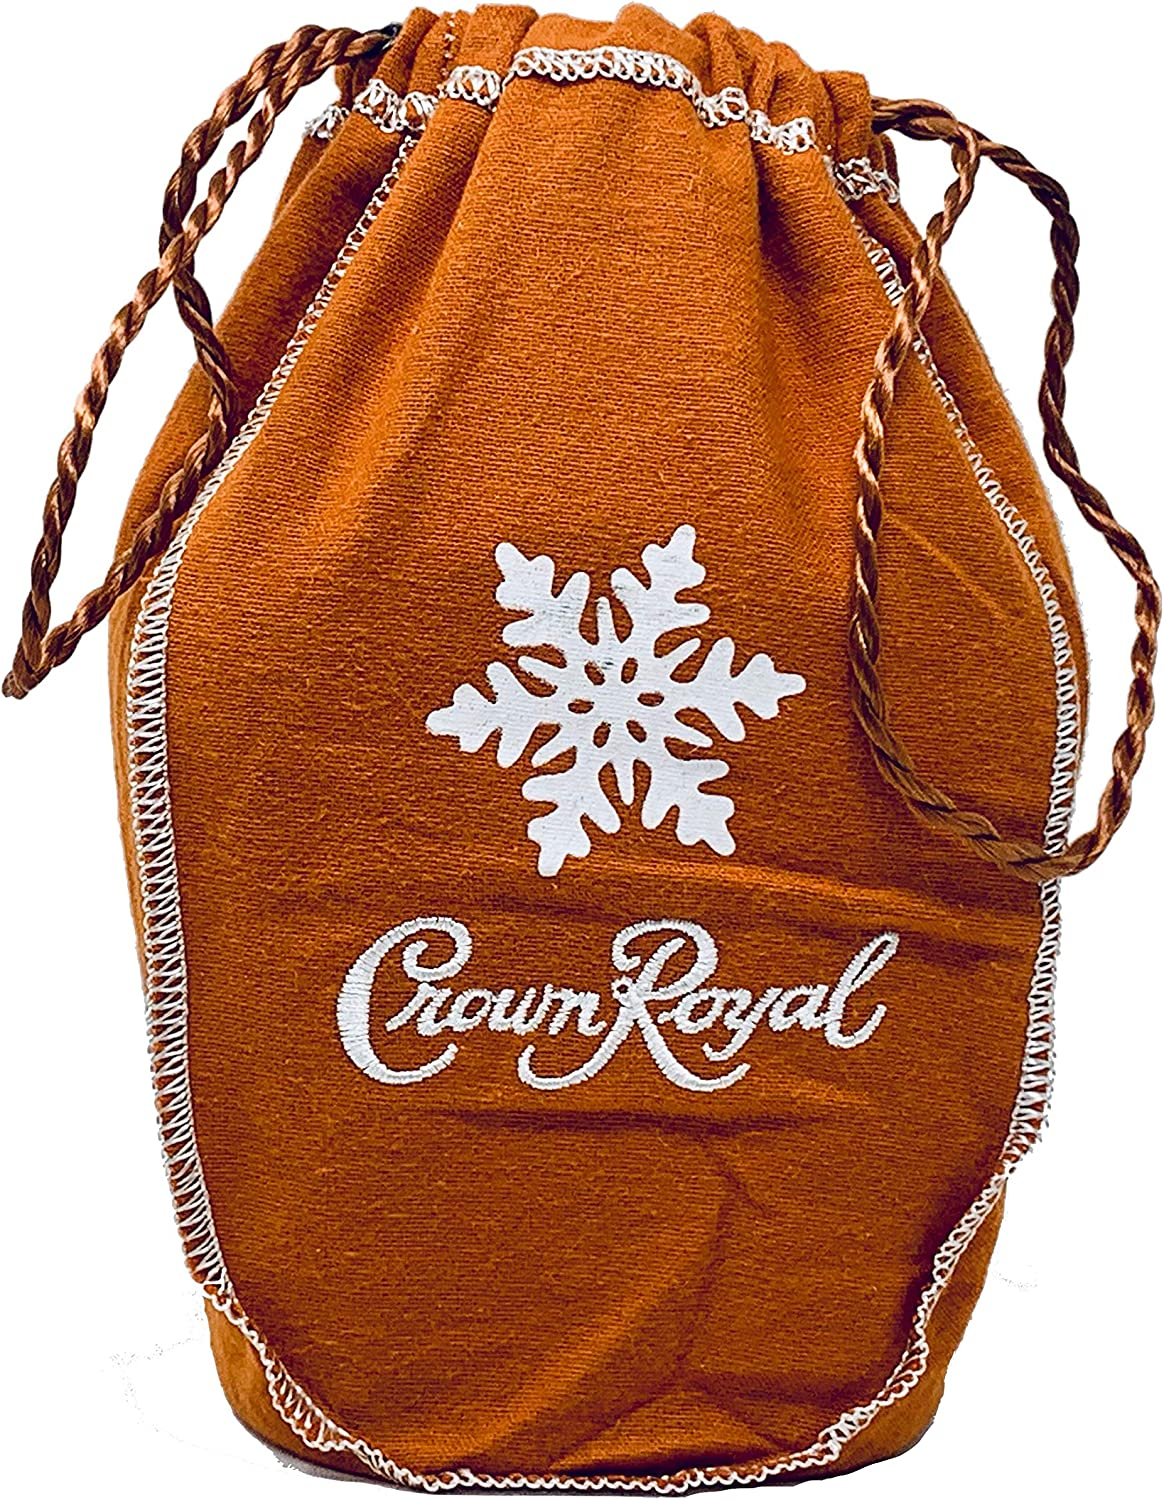 Crown Royal Bag with Drawstring | Burnt Orange with Snow Flake - Salted Caramel Holiday